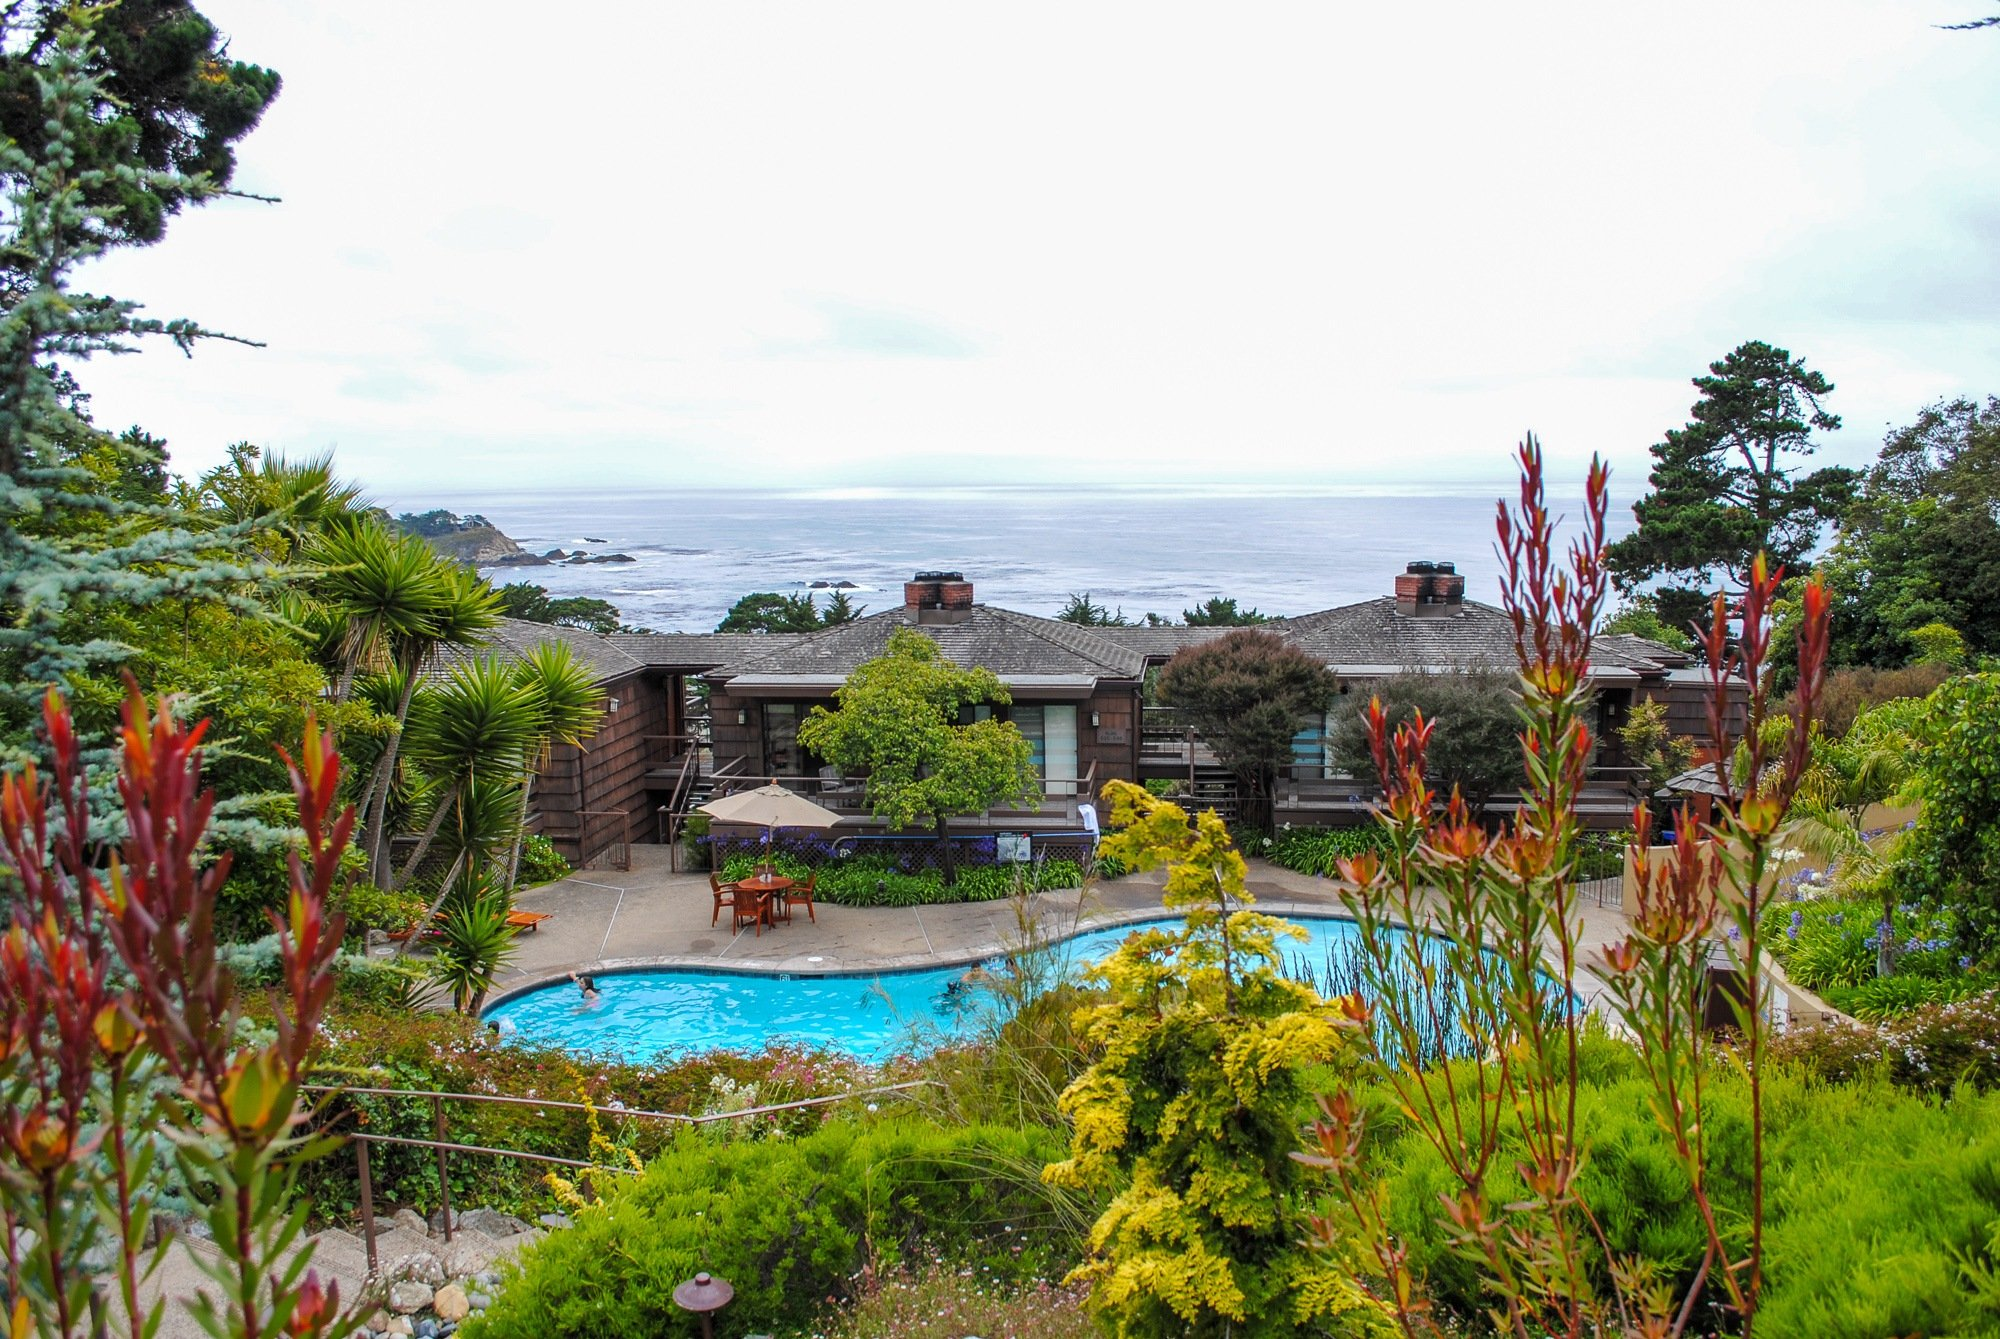 Hyatt Carmel Highlands pool and incredible ocean views